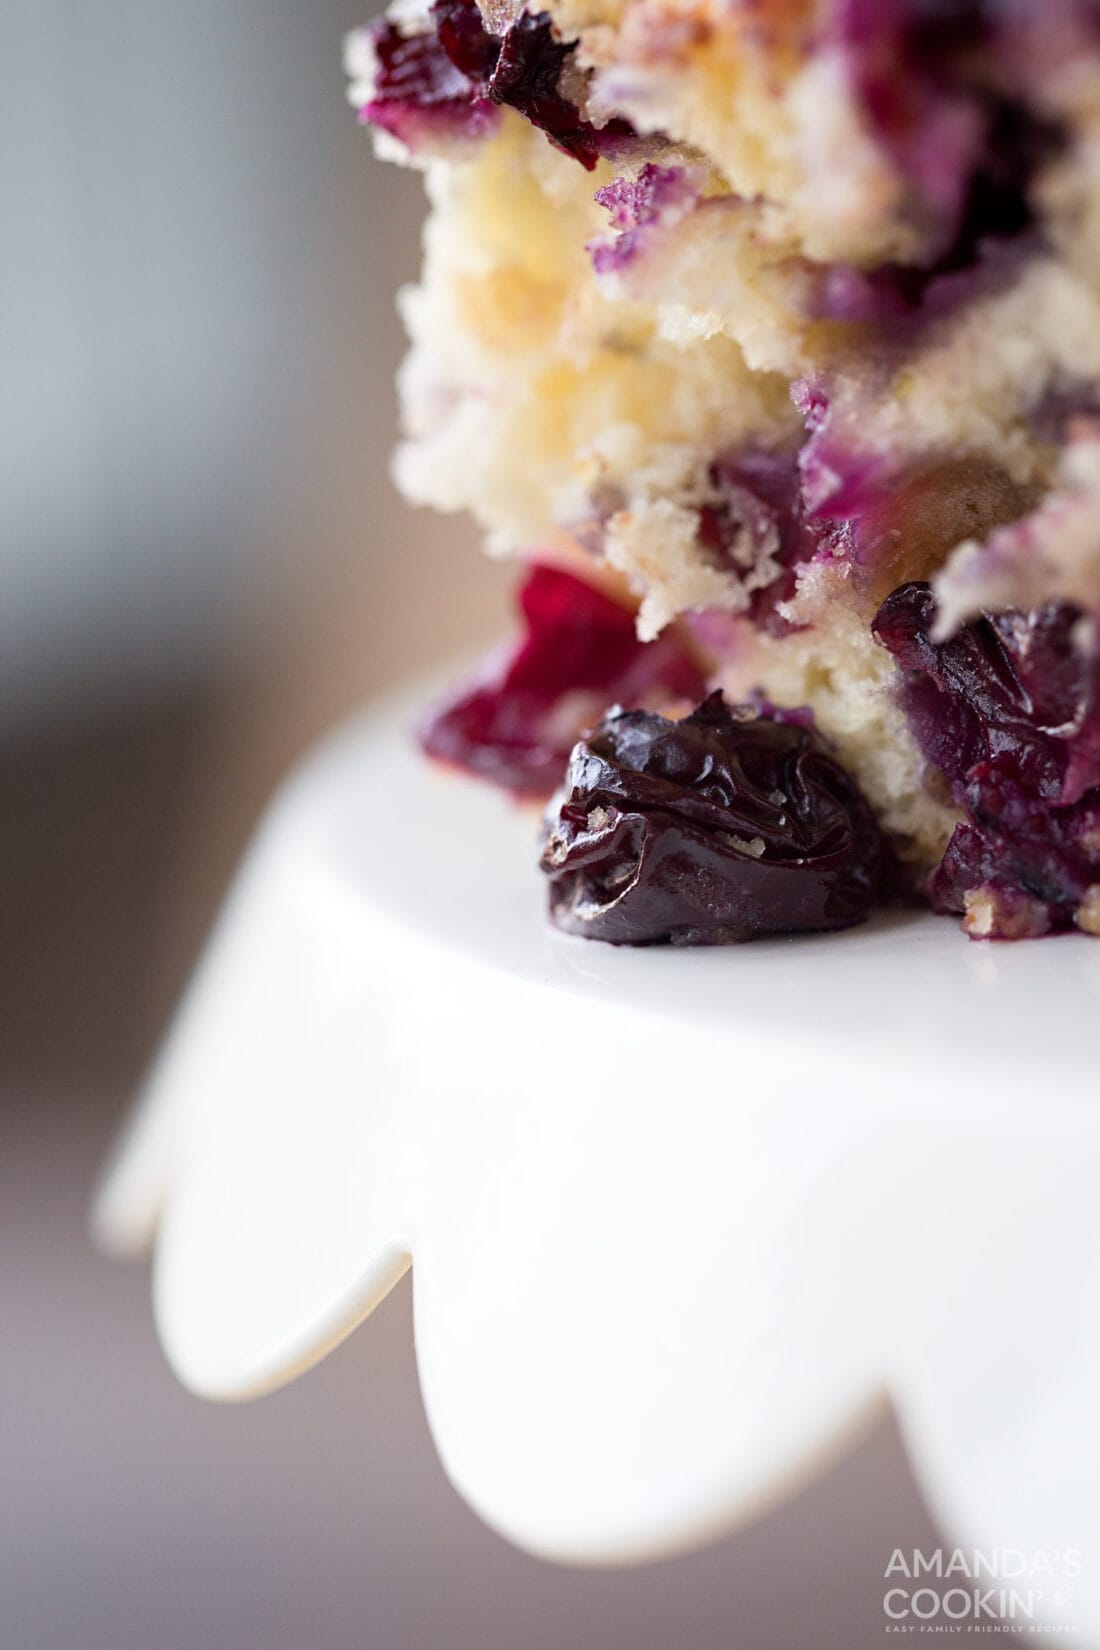 extreme closeup of blueberry cake